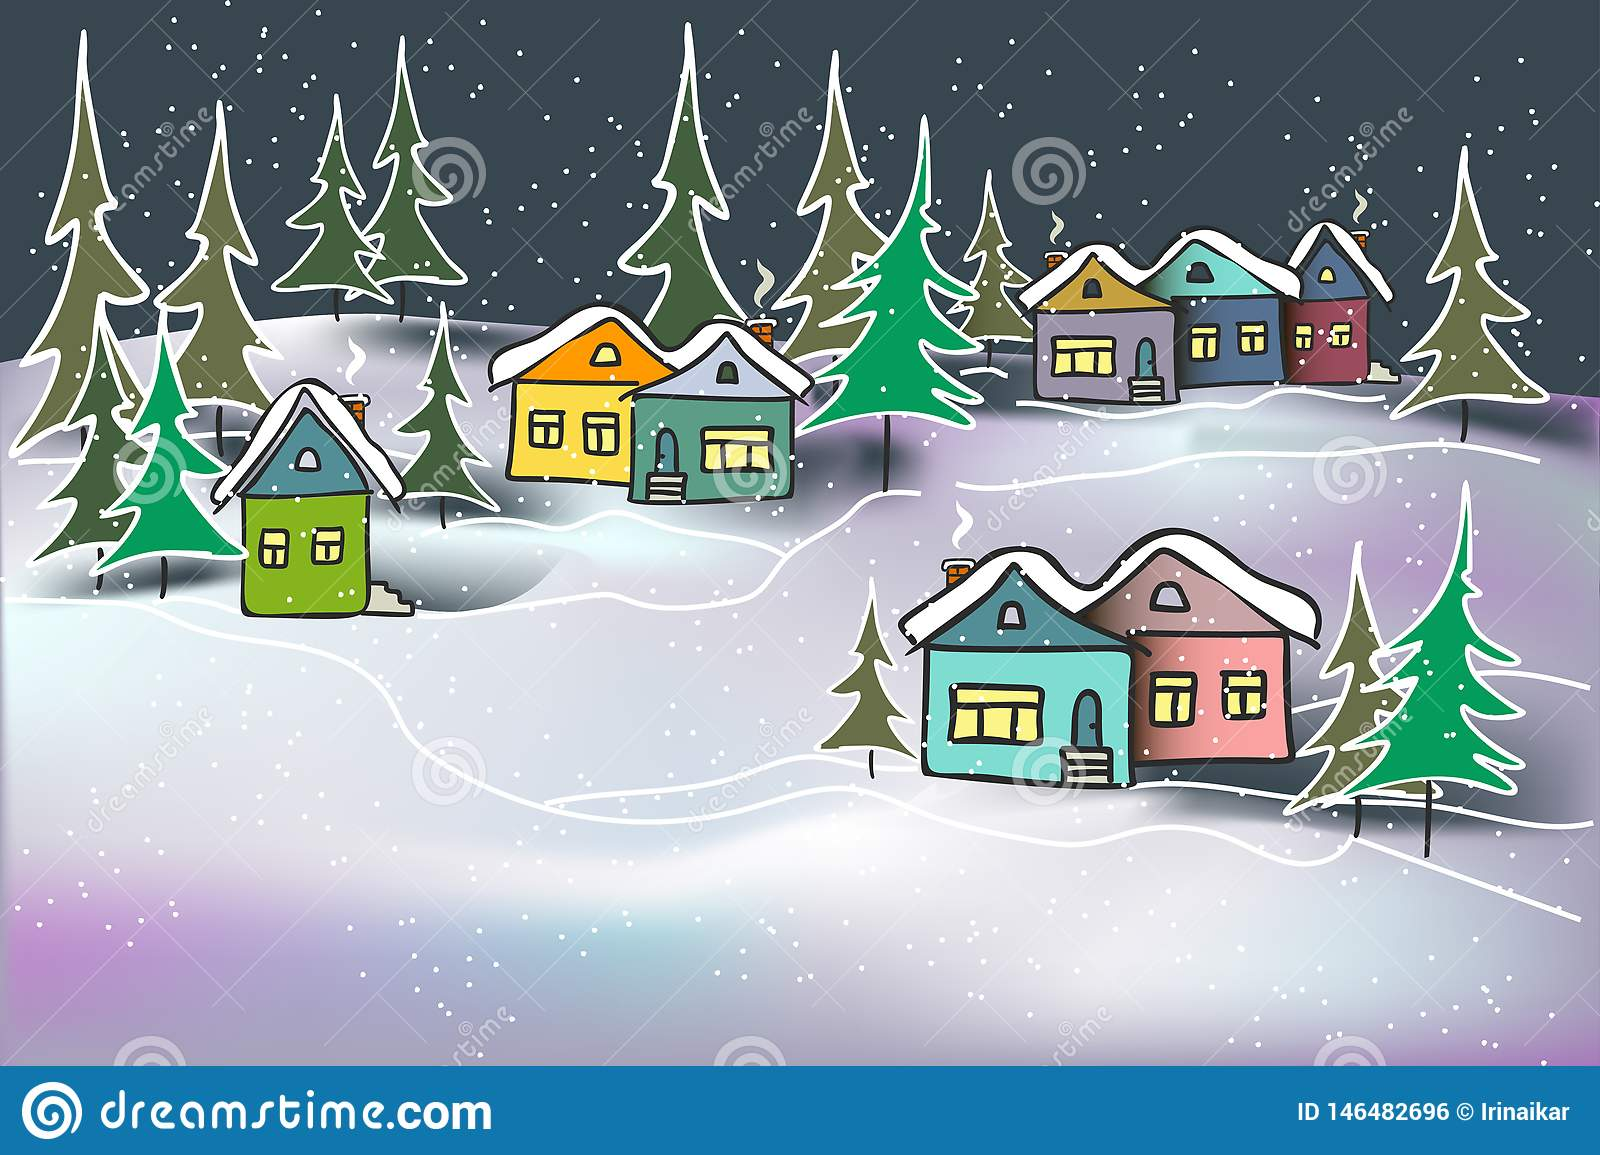 Cute cozy night winter landscape caramel multicolored houses and firs in snow drifts.